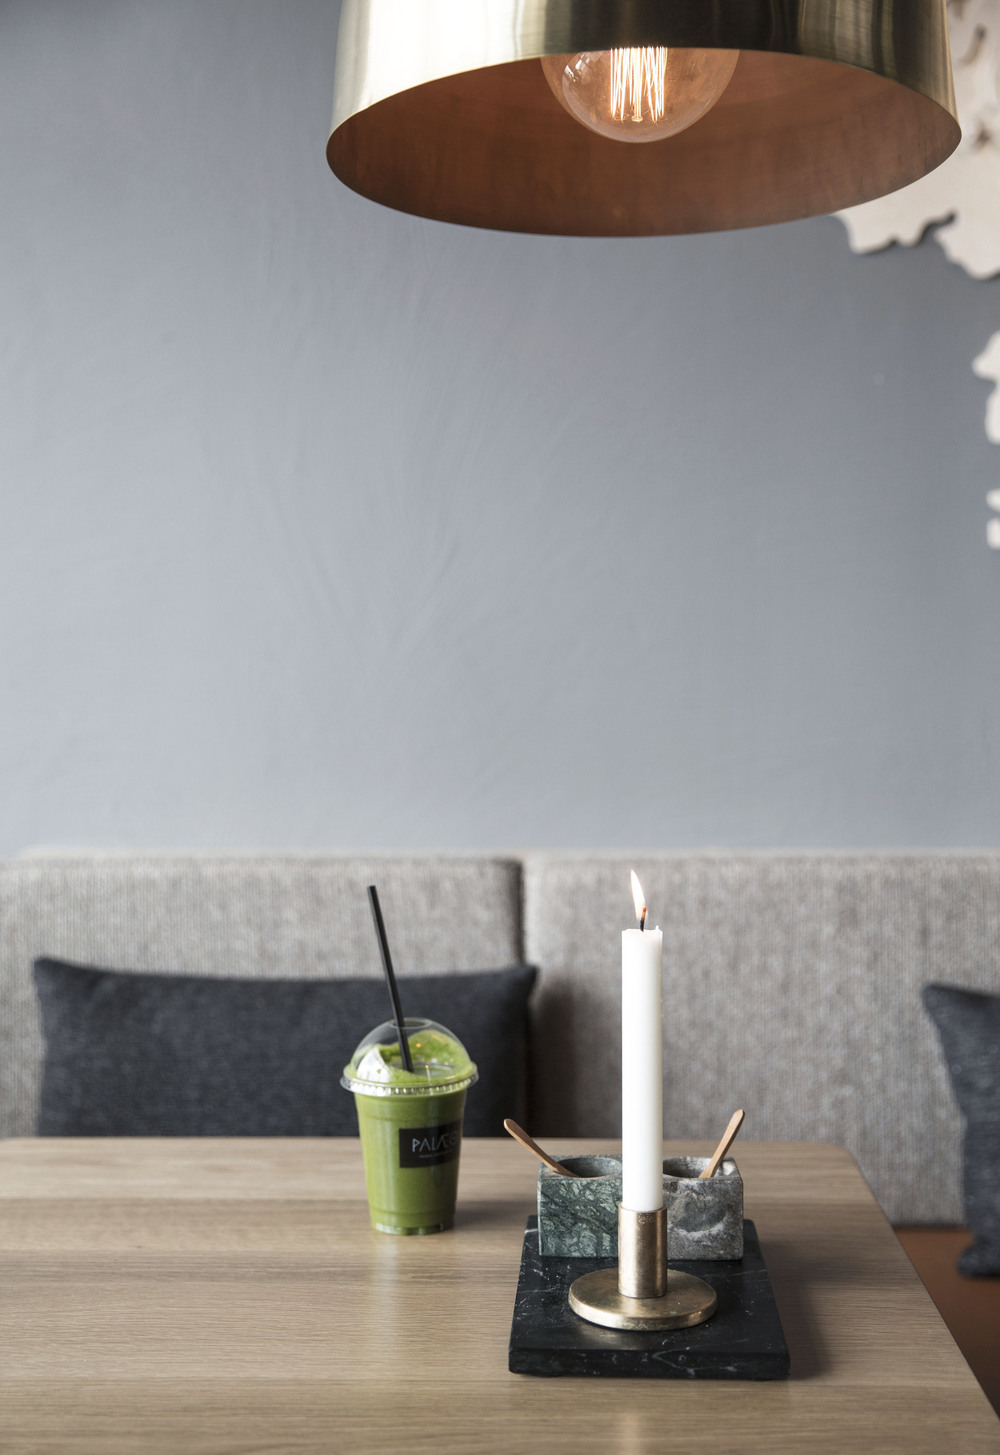 A healthy smoothie on table at Palæo restaurant in Copenhagen